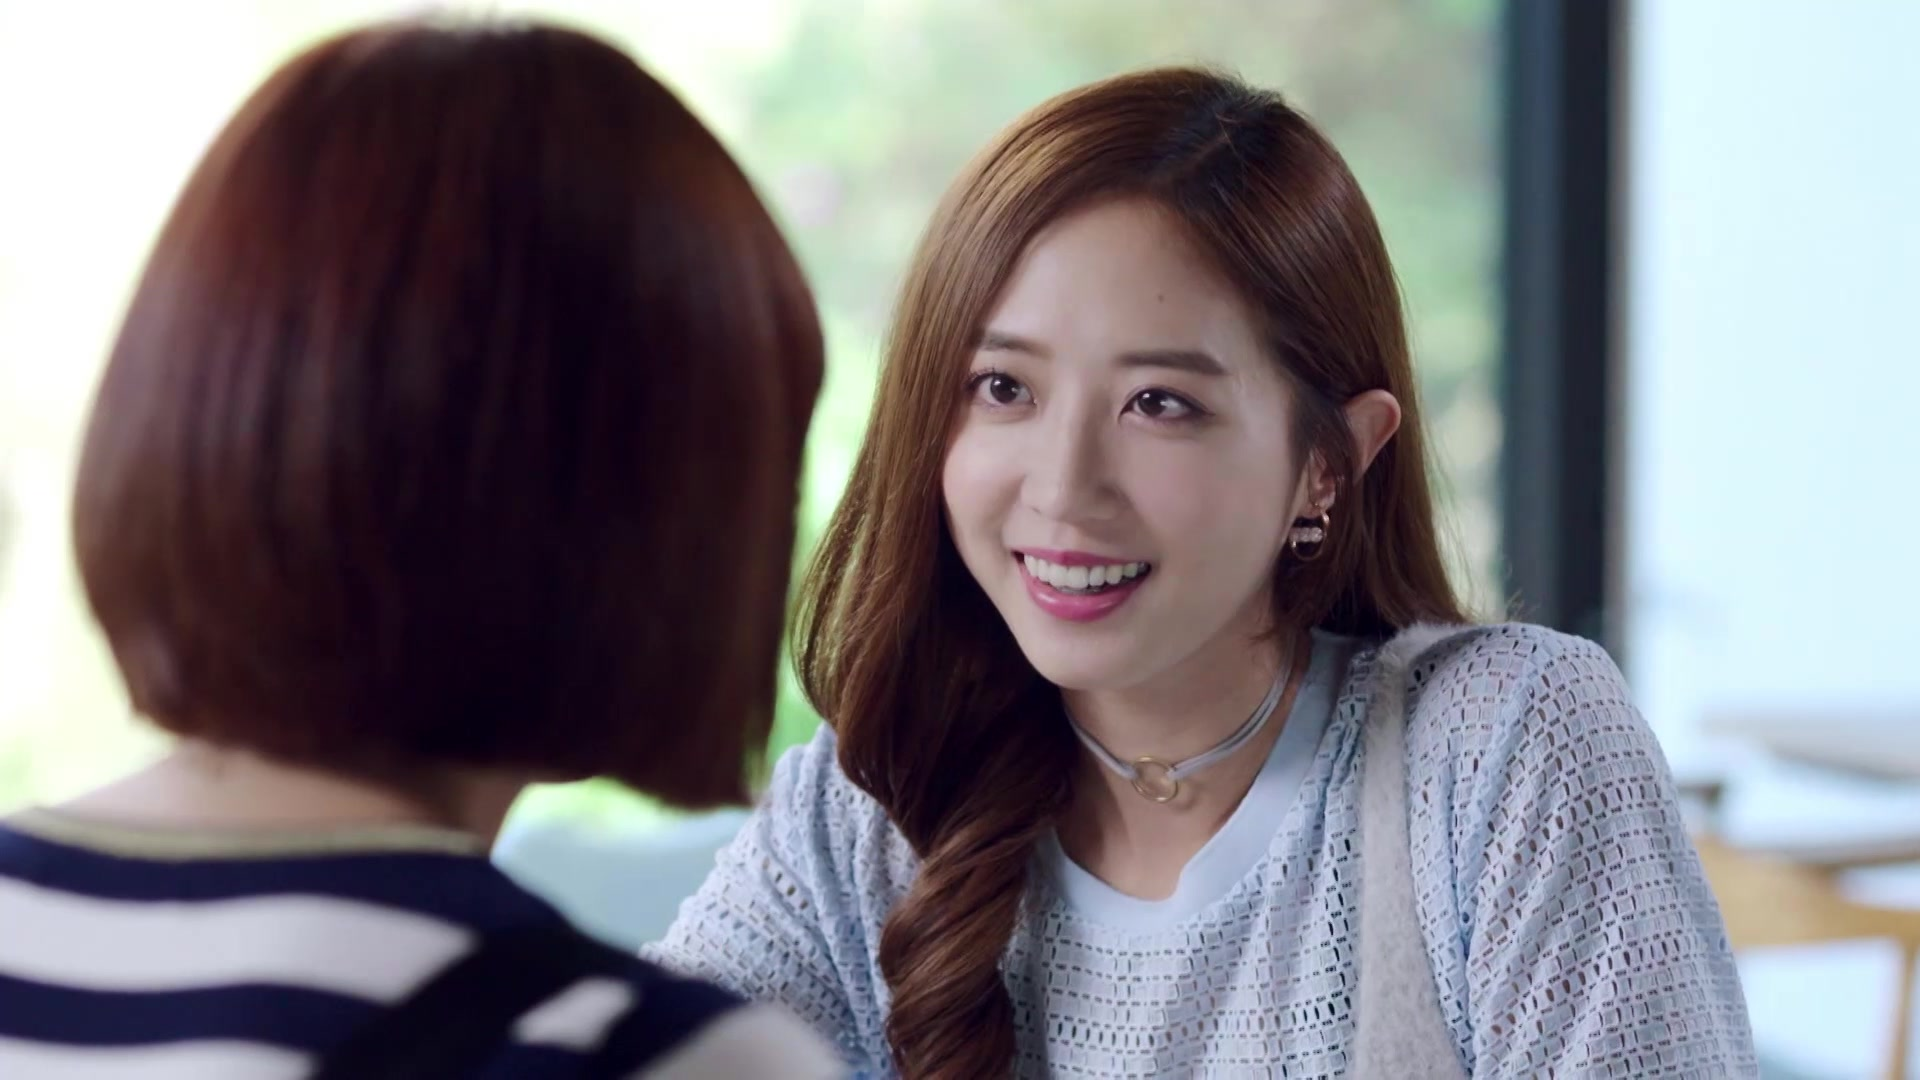 Behind Your Smile Episode 4